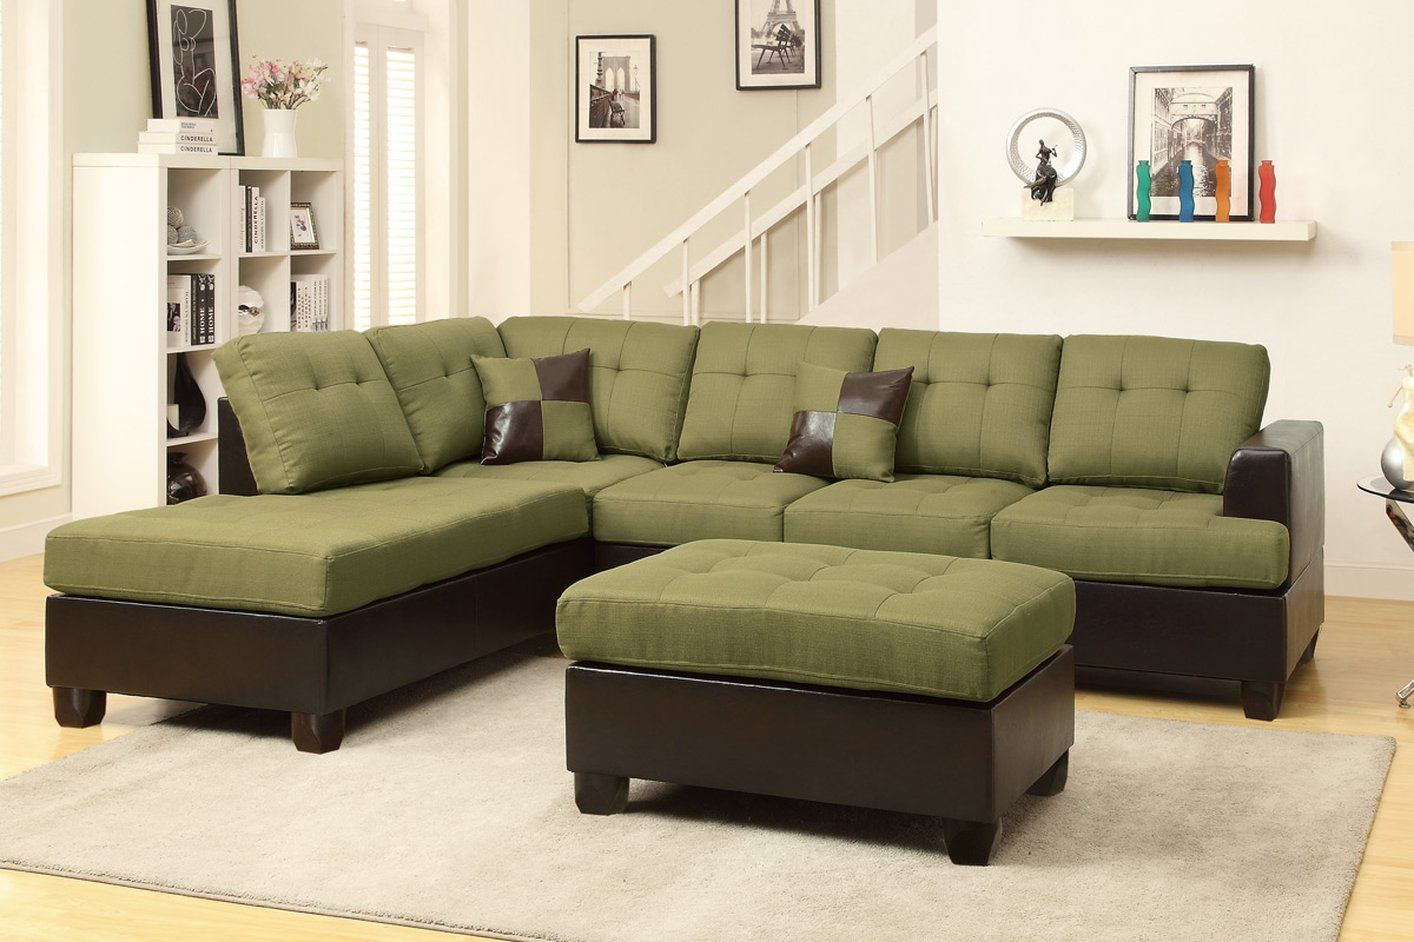 Poundex Moss F7604 Green Fabric Sectional Sofa and Ottoman  : moss peridot fabric sectional sofa and ottoman 22 from www.stealasofa.com size 1414 x 942 jpeg 177kB